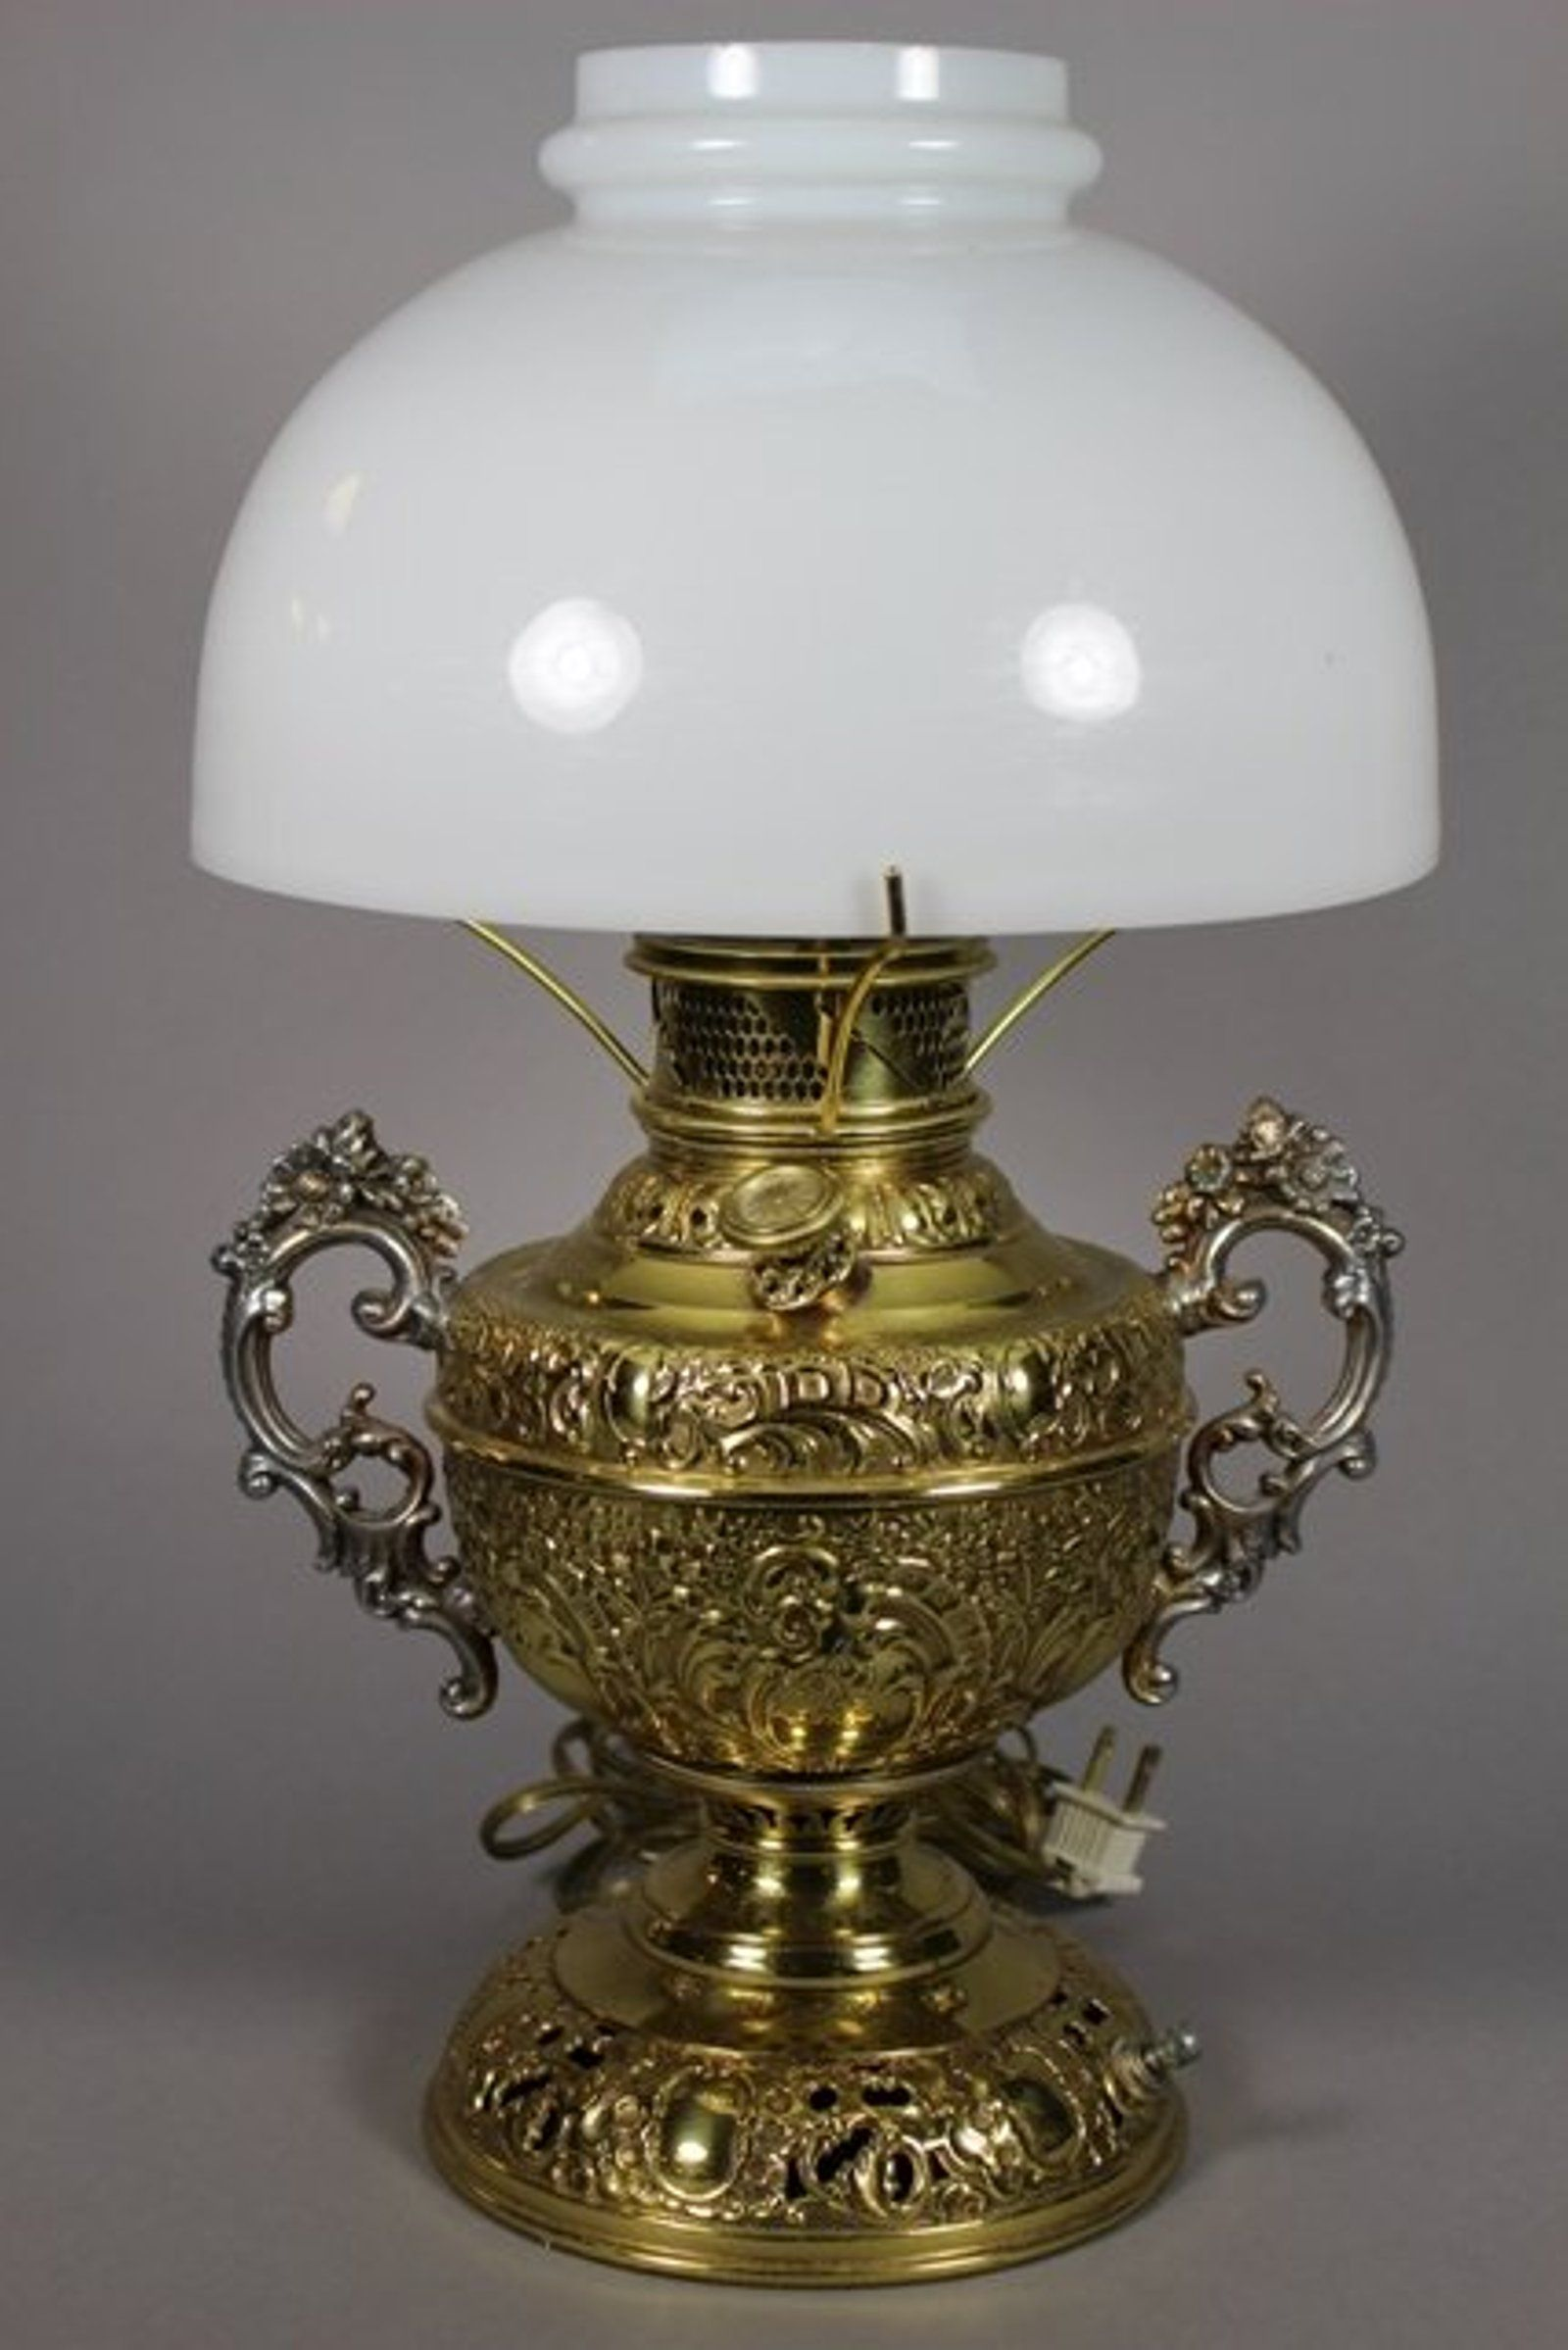 The Rochester Lamp Co. Oil Lamp Electrified